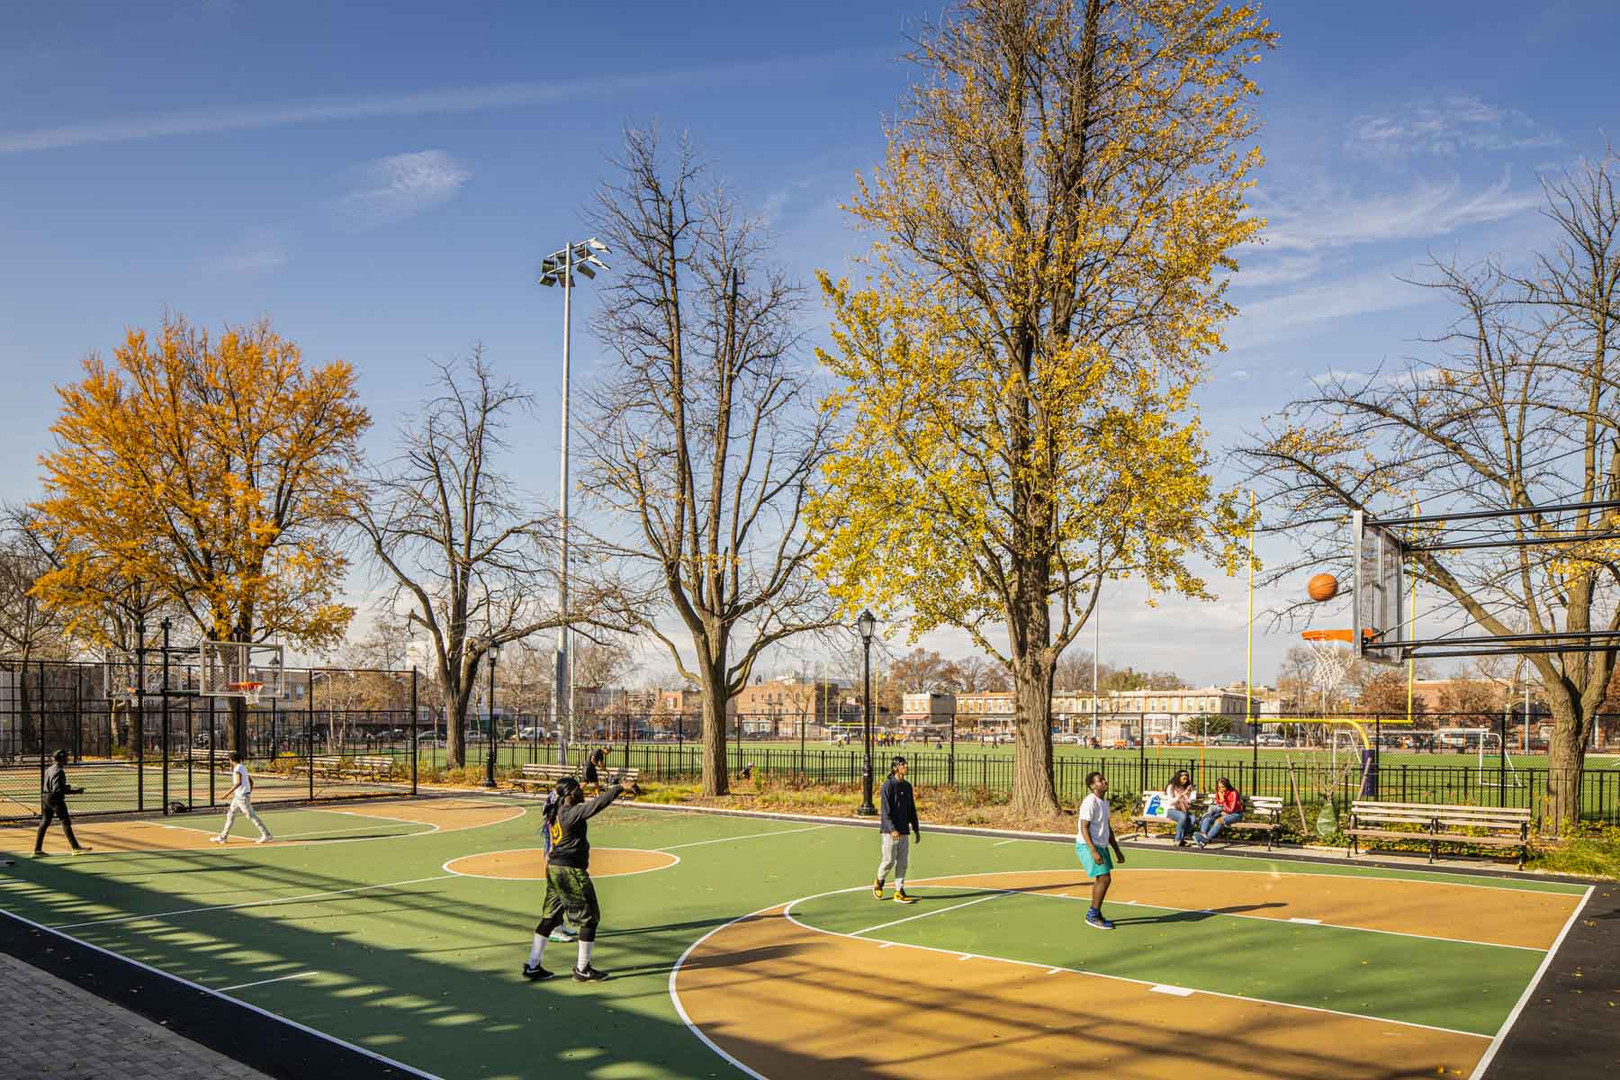 A new colorful basketball court is located in the Northern Parcel of Betsy Head Park.